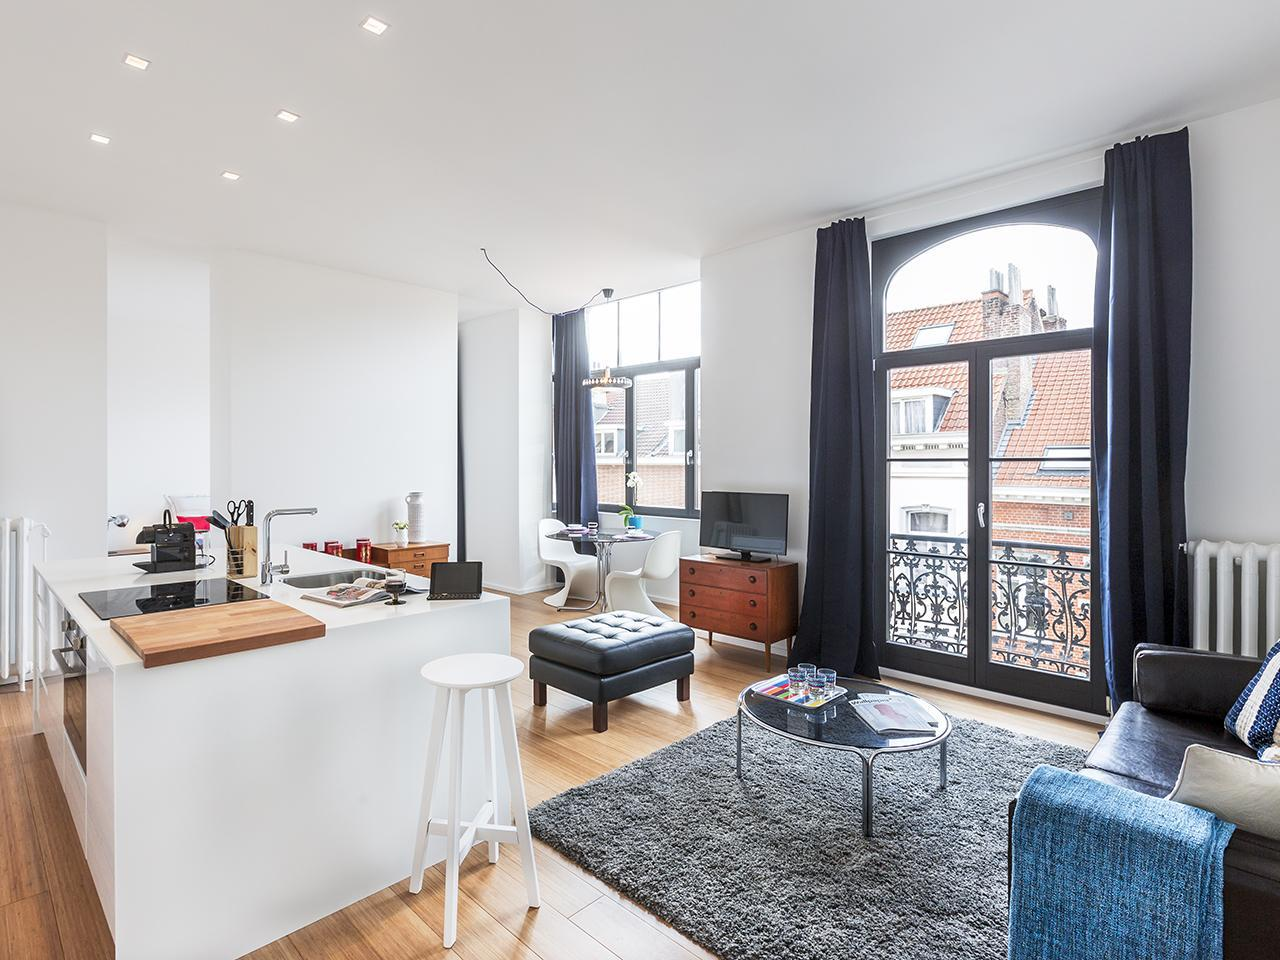 Furnished apartments in Brussels | Housestories